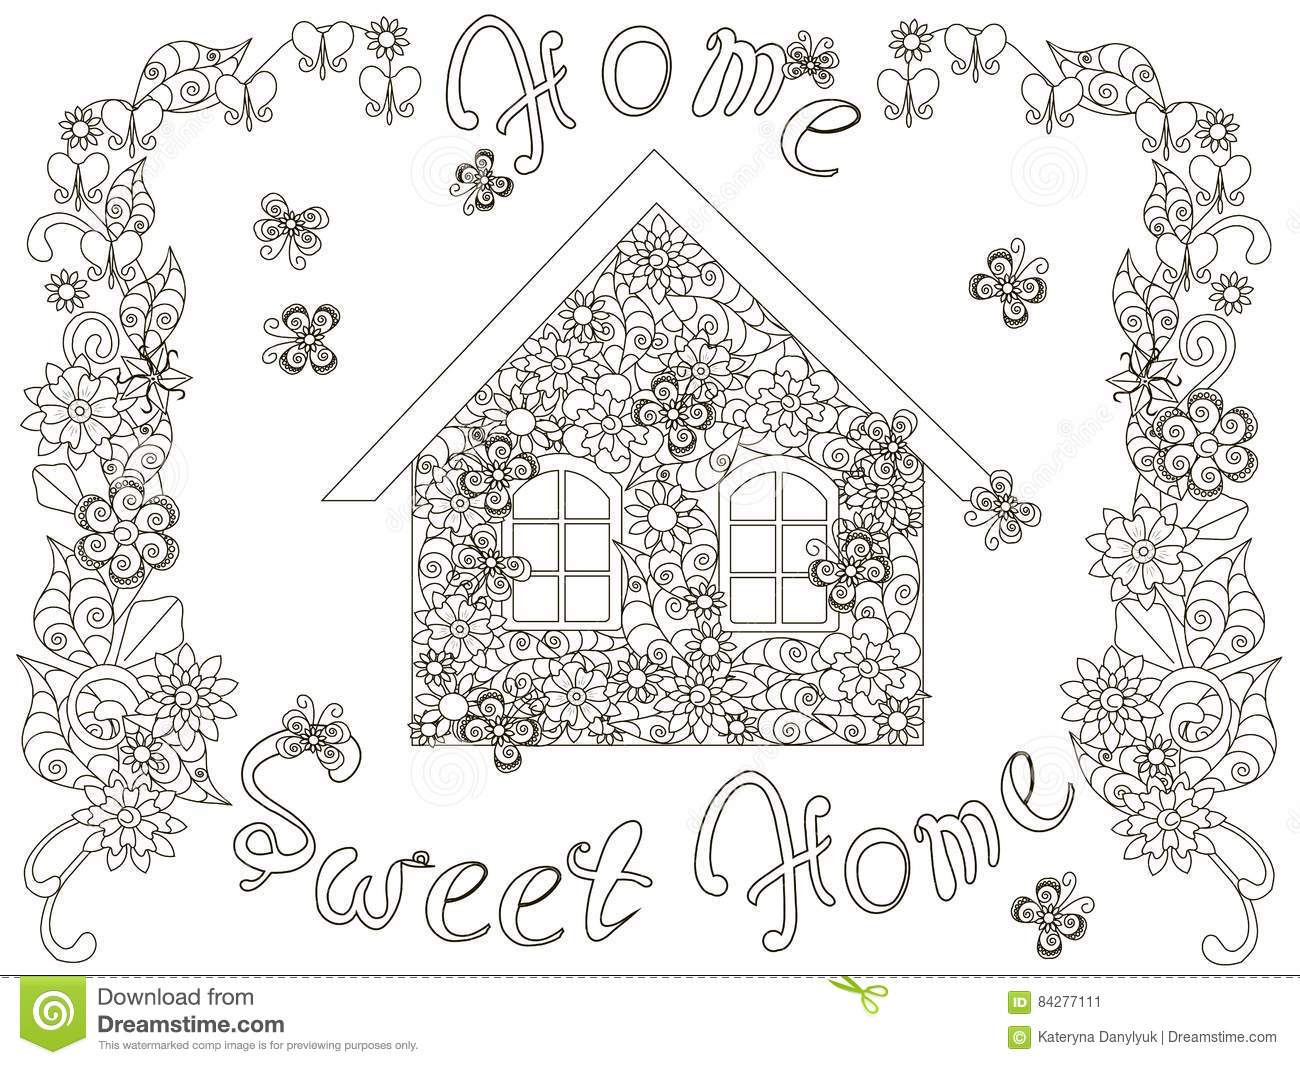 Home Sweet Home Coloring Pages Coloring Pages